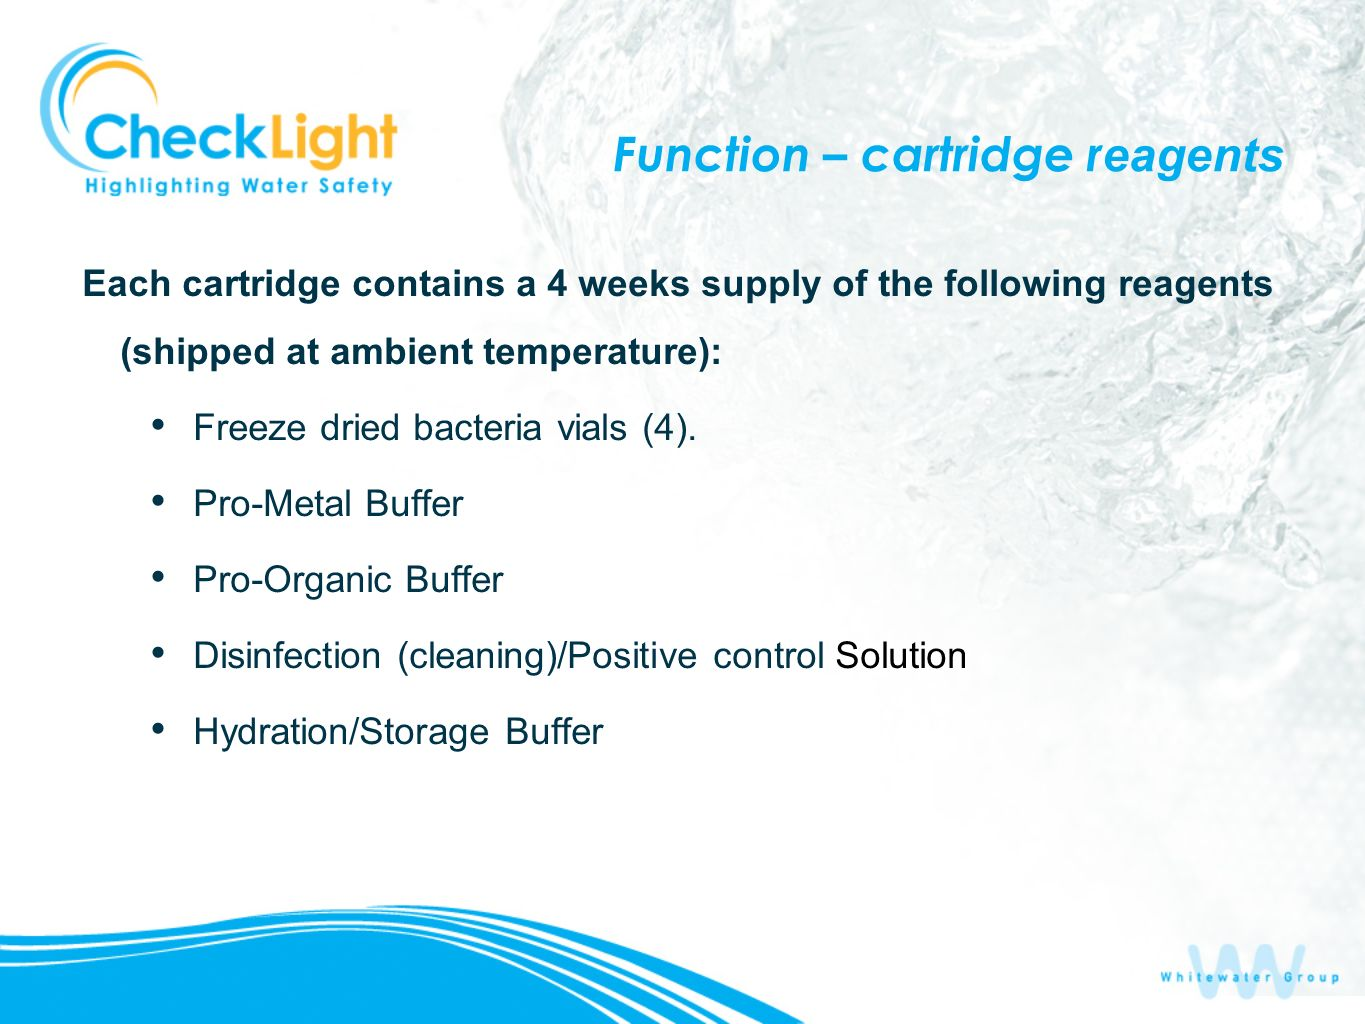 Function – cartridge r eagents Each cartridge contains a 4 weeks supply of the following reagents (shipped at ambient temperature): Freeze dried bacte